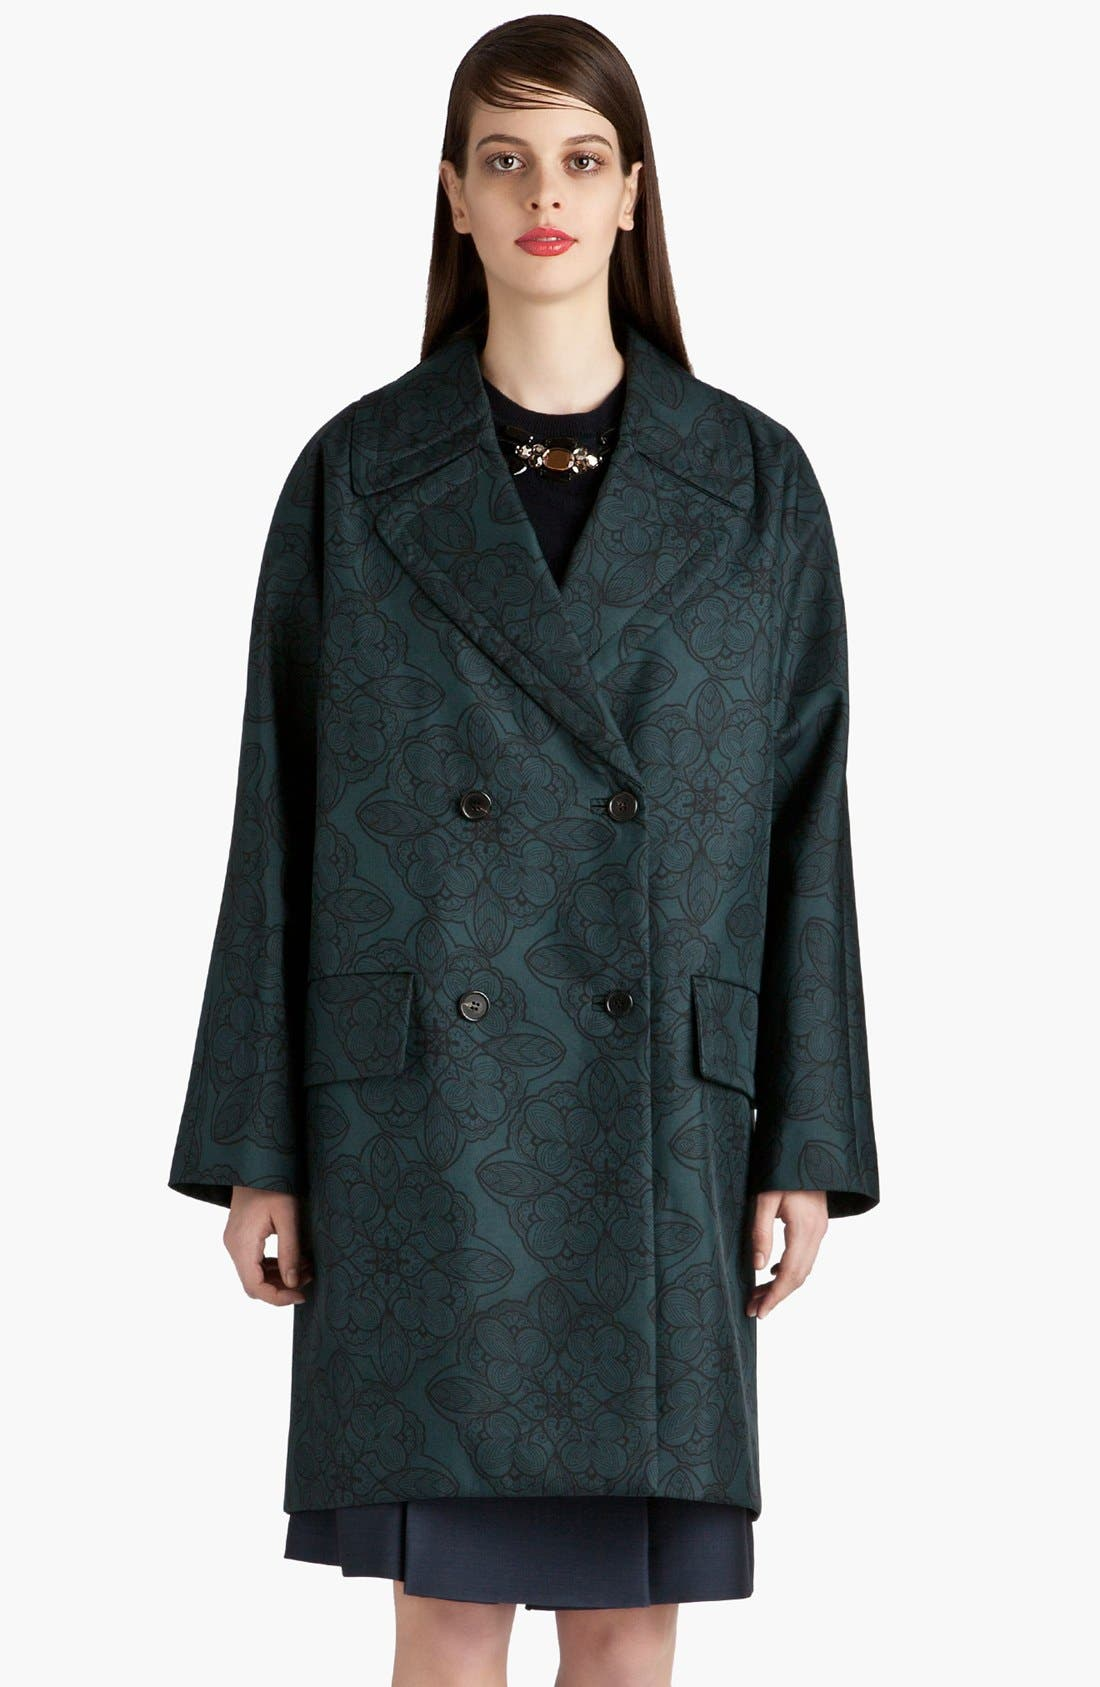 Main Image - Marni Snowflower Print Bonded Coat